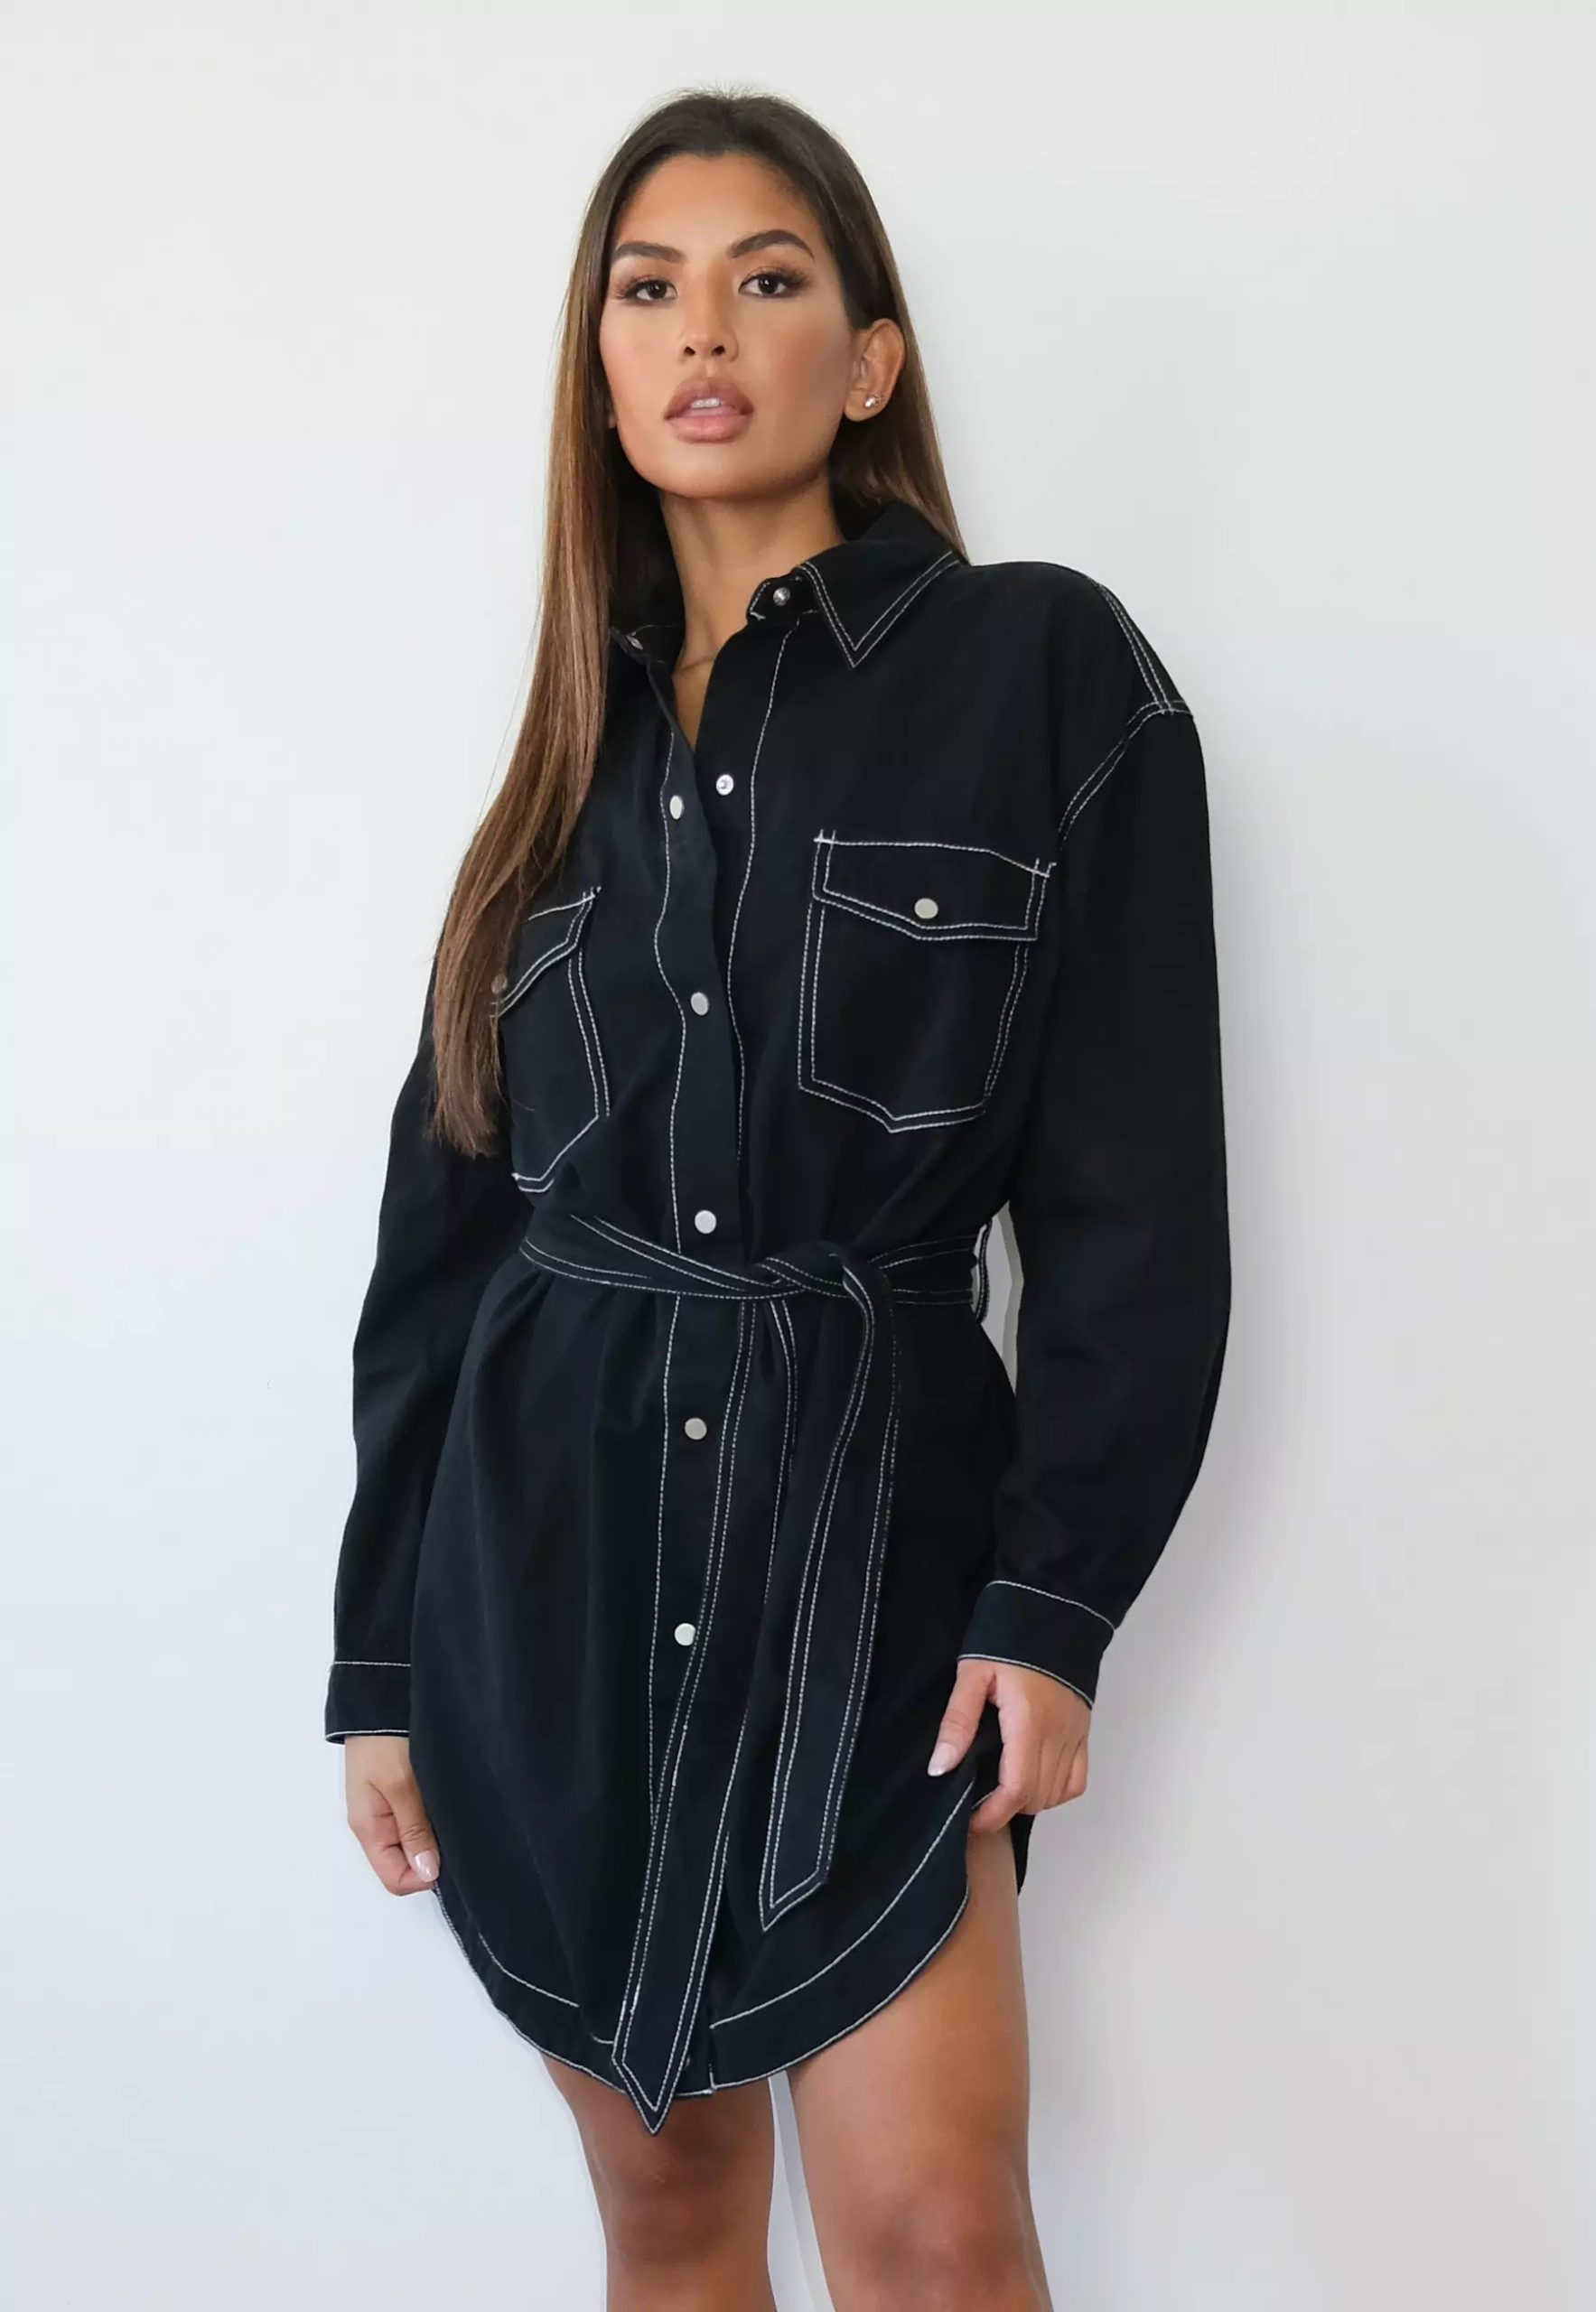 tall black oversized contrast stitch denim shirt dress